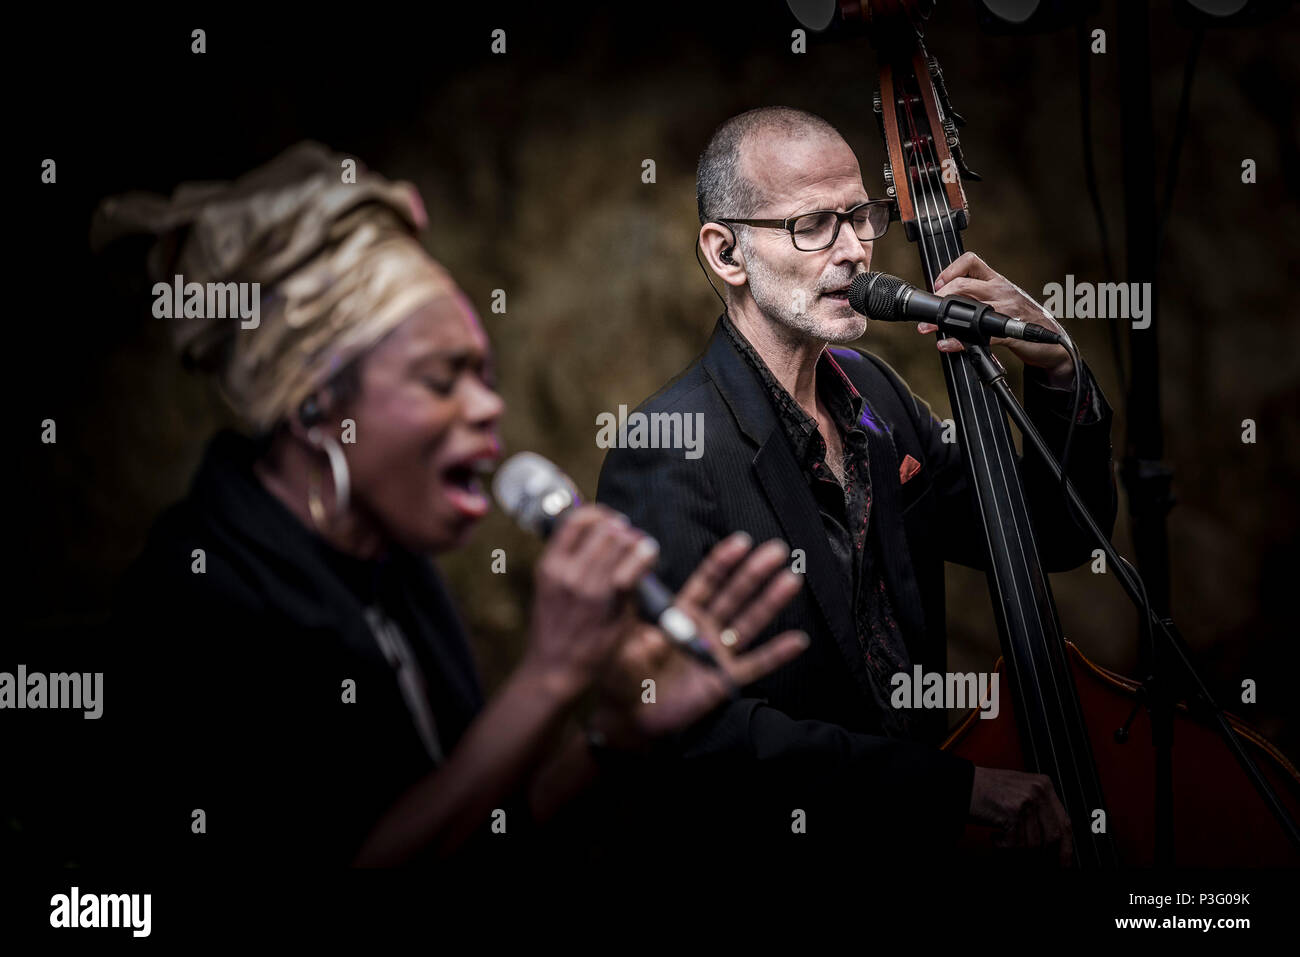 Yan Speake bassist and Ley Adewole lead vocalist of The Grace Notes performing at Trebah Garden amphitheatre in Cornwall. Stock Photo